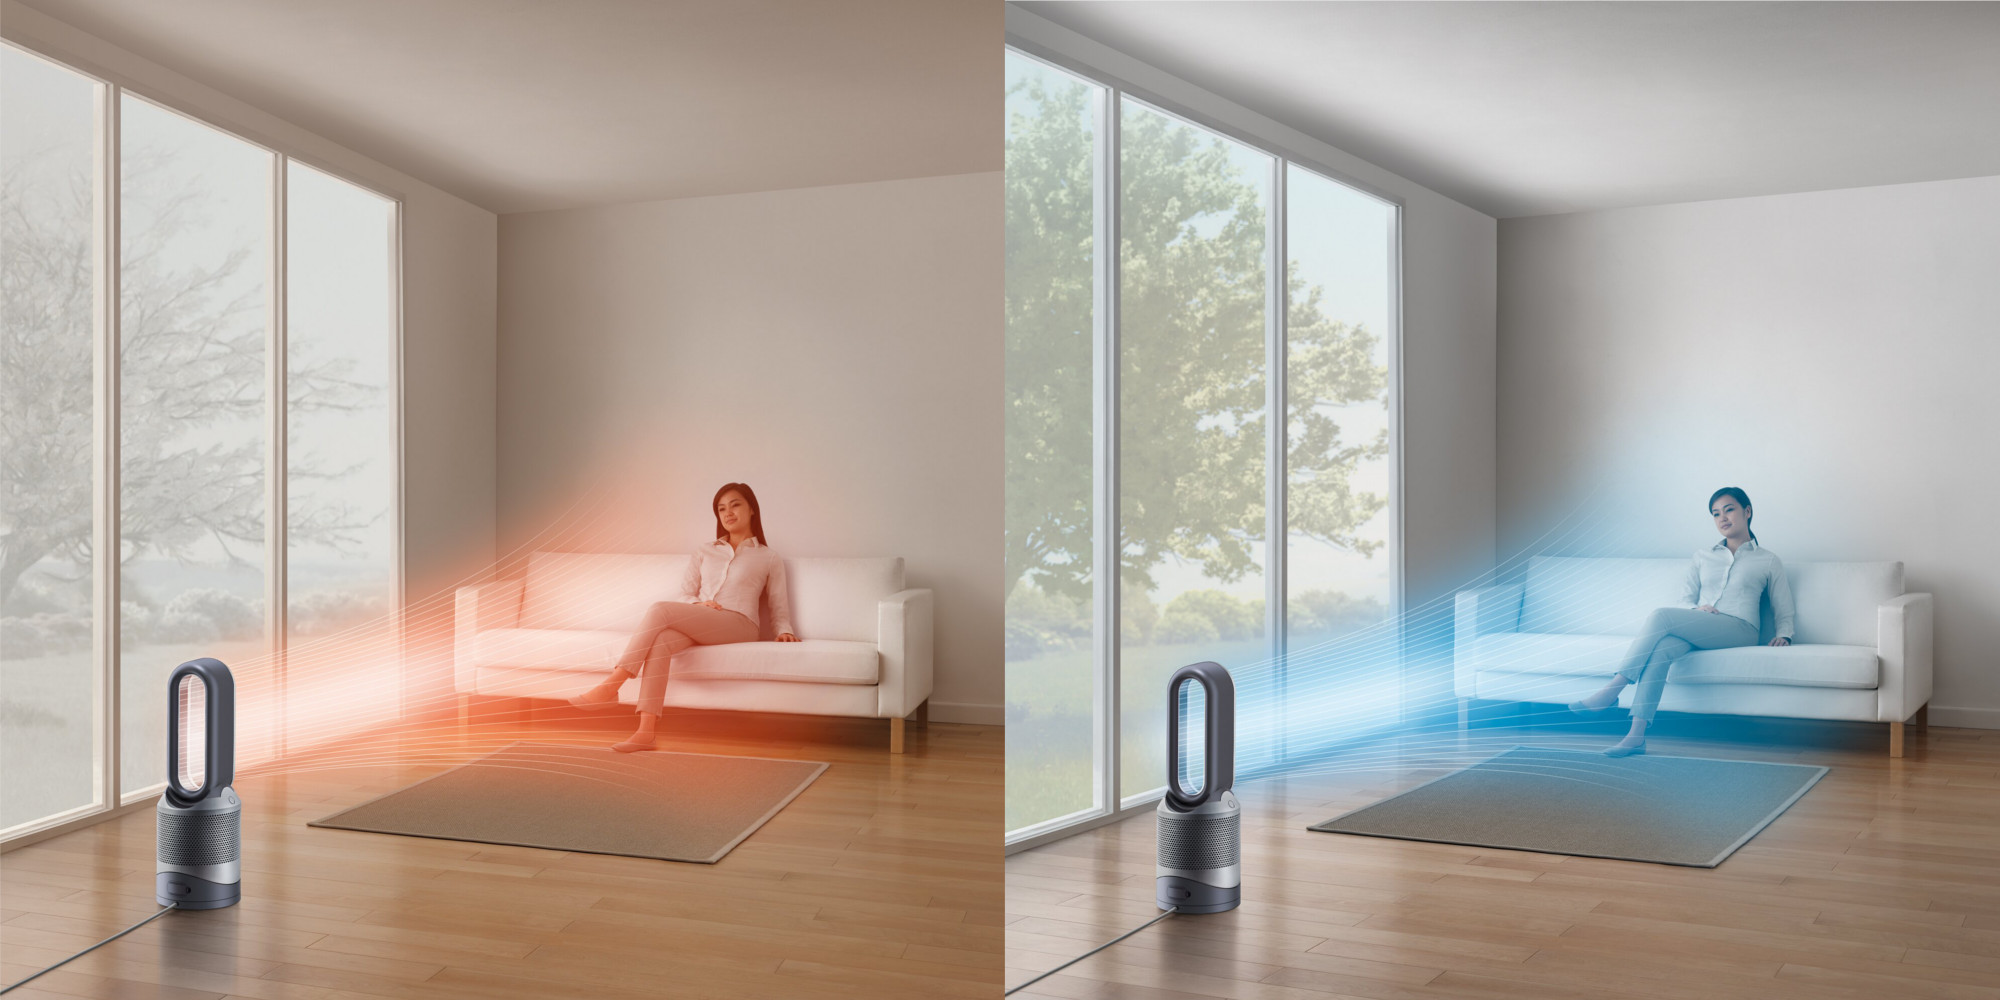 Dyson's Hot + Cool Fan heats, cools and purifies your home for $170 (Refurb, Orig. $500), more